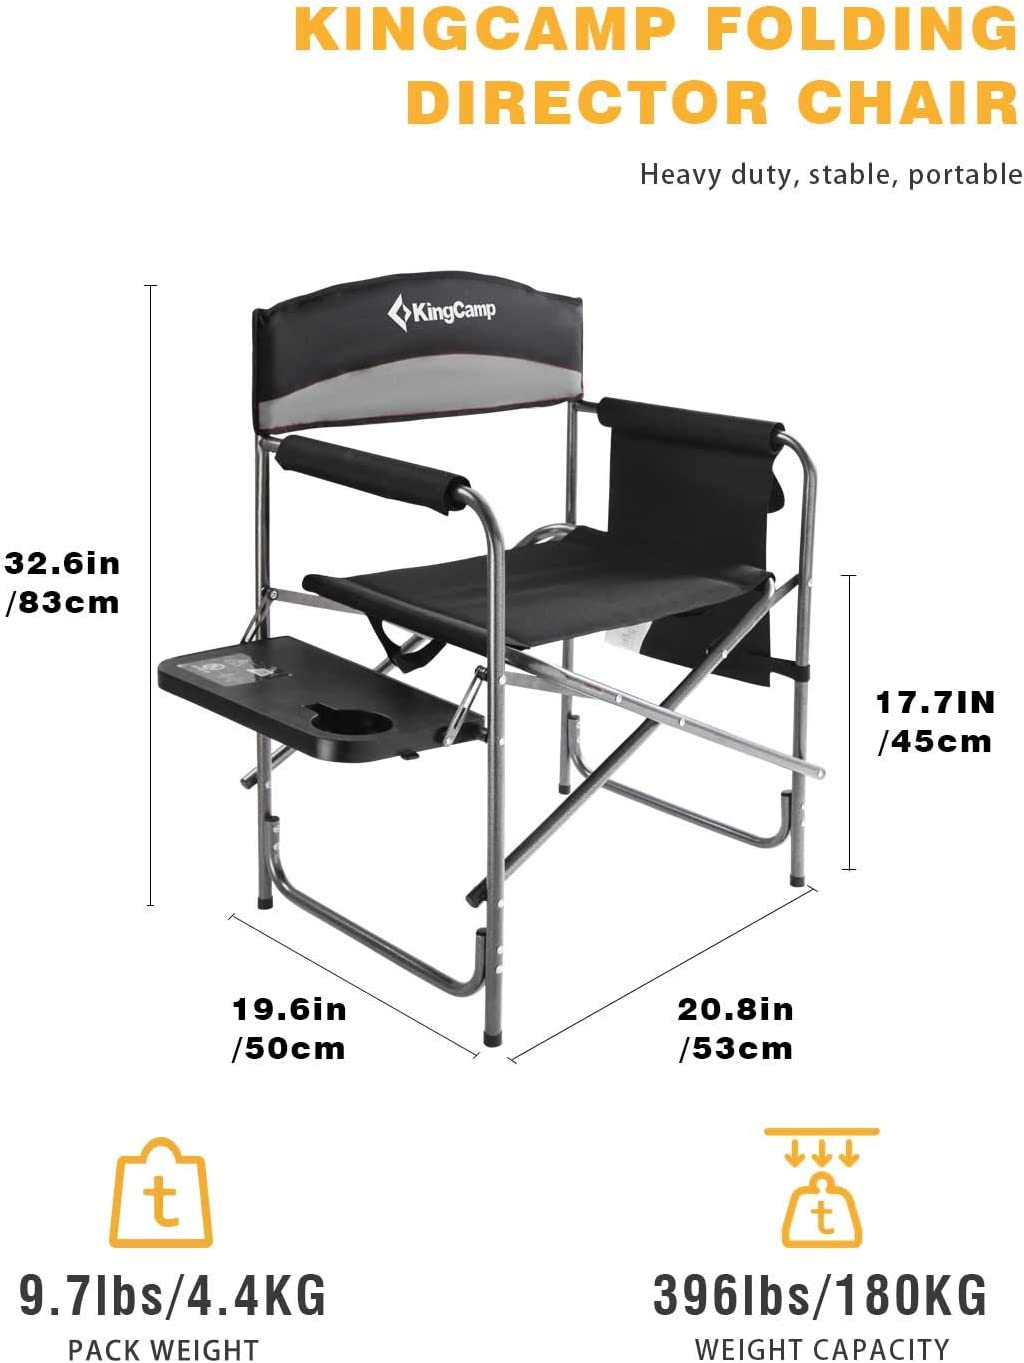 KingCamp Heavy Duty Camping Folding Director Chair Oversize Padded Seat with Side Table and Storage Bag Supports 180 KG Black/Mediumgrey